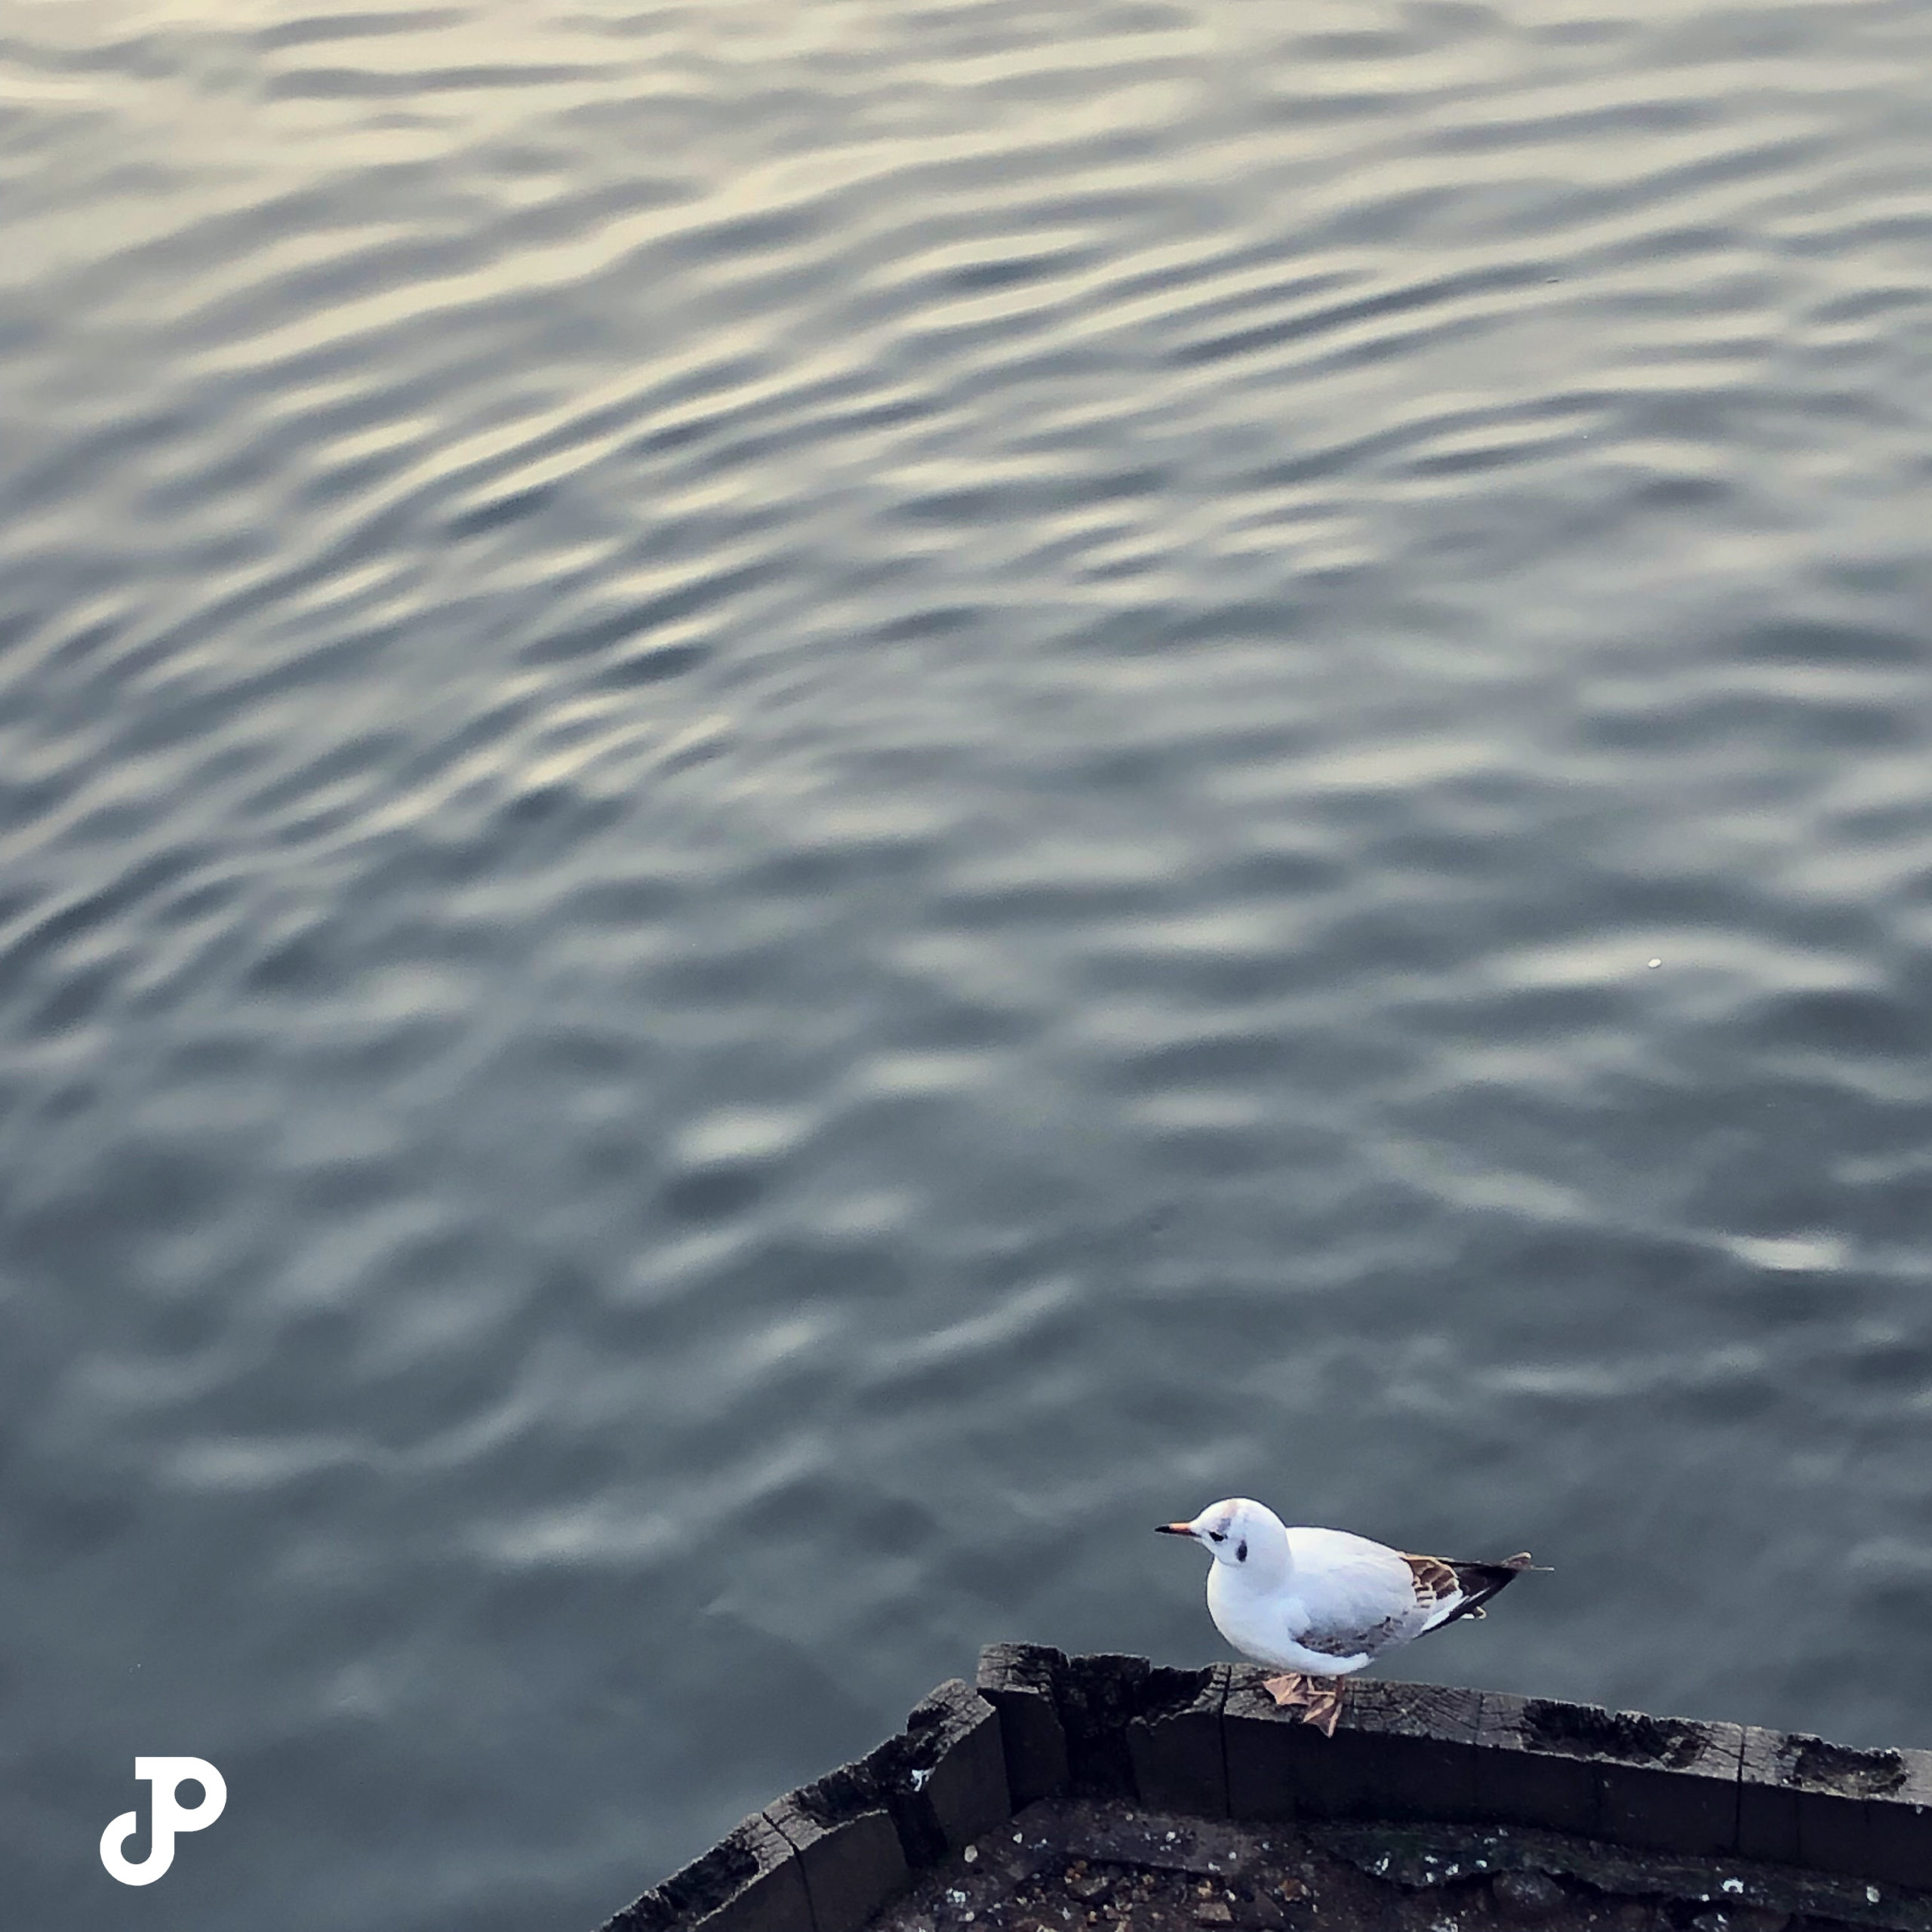 a small seagull perched on a wooden plank above the River Thames in Kingston Upon Thames